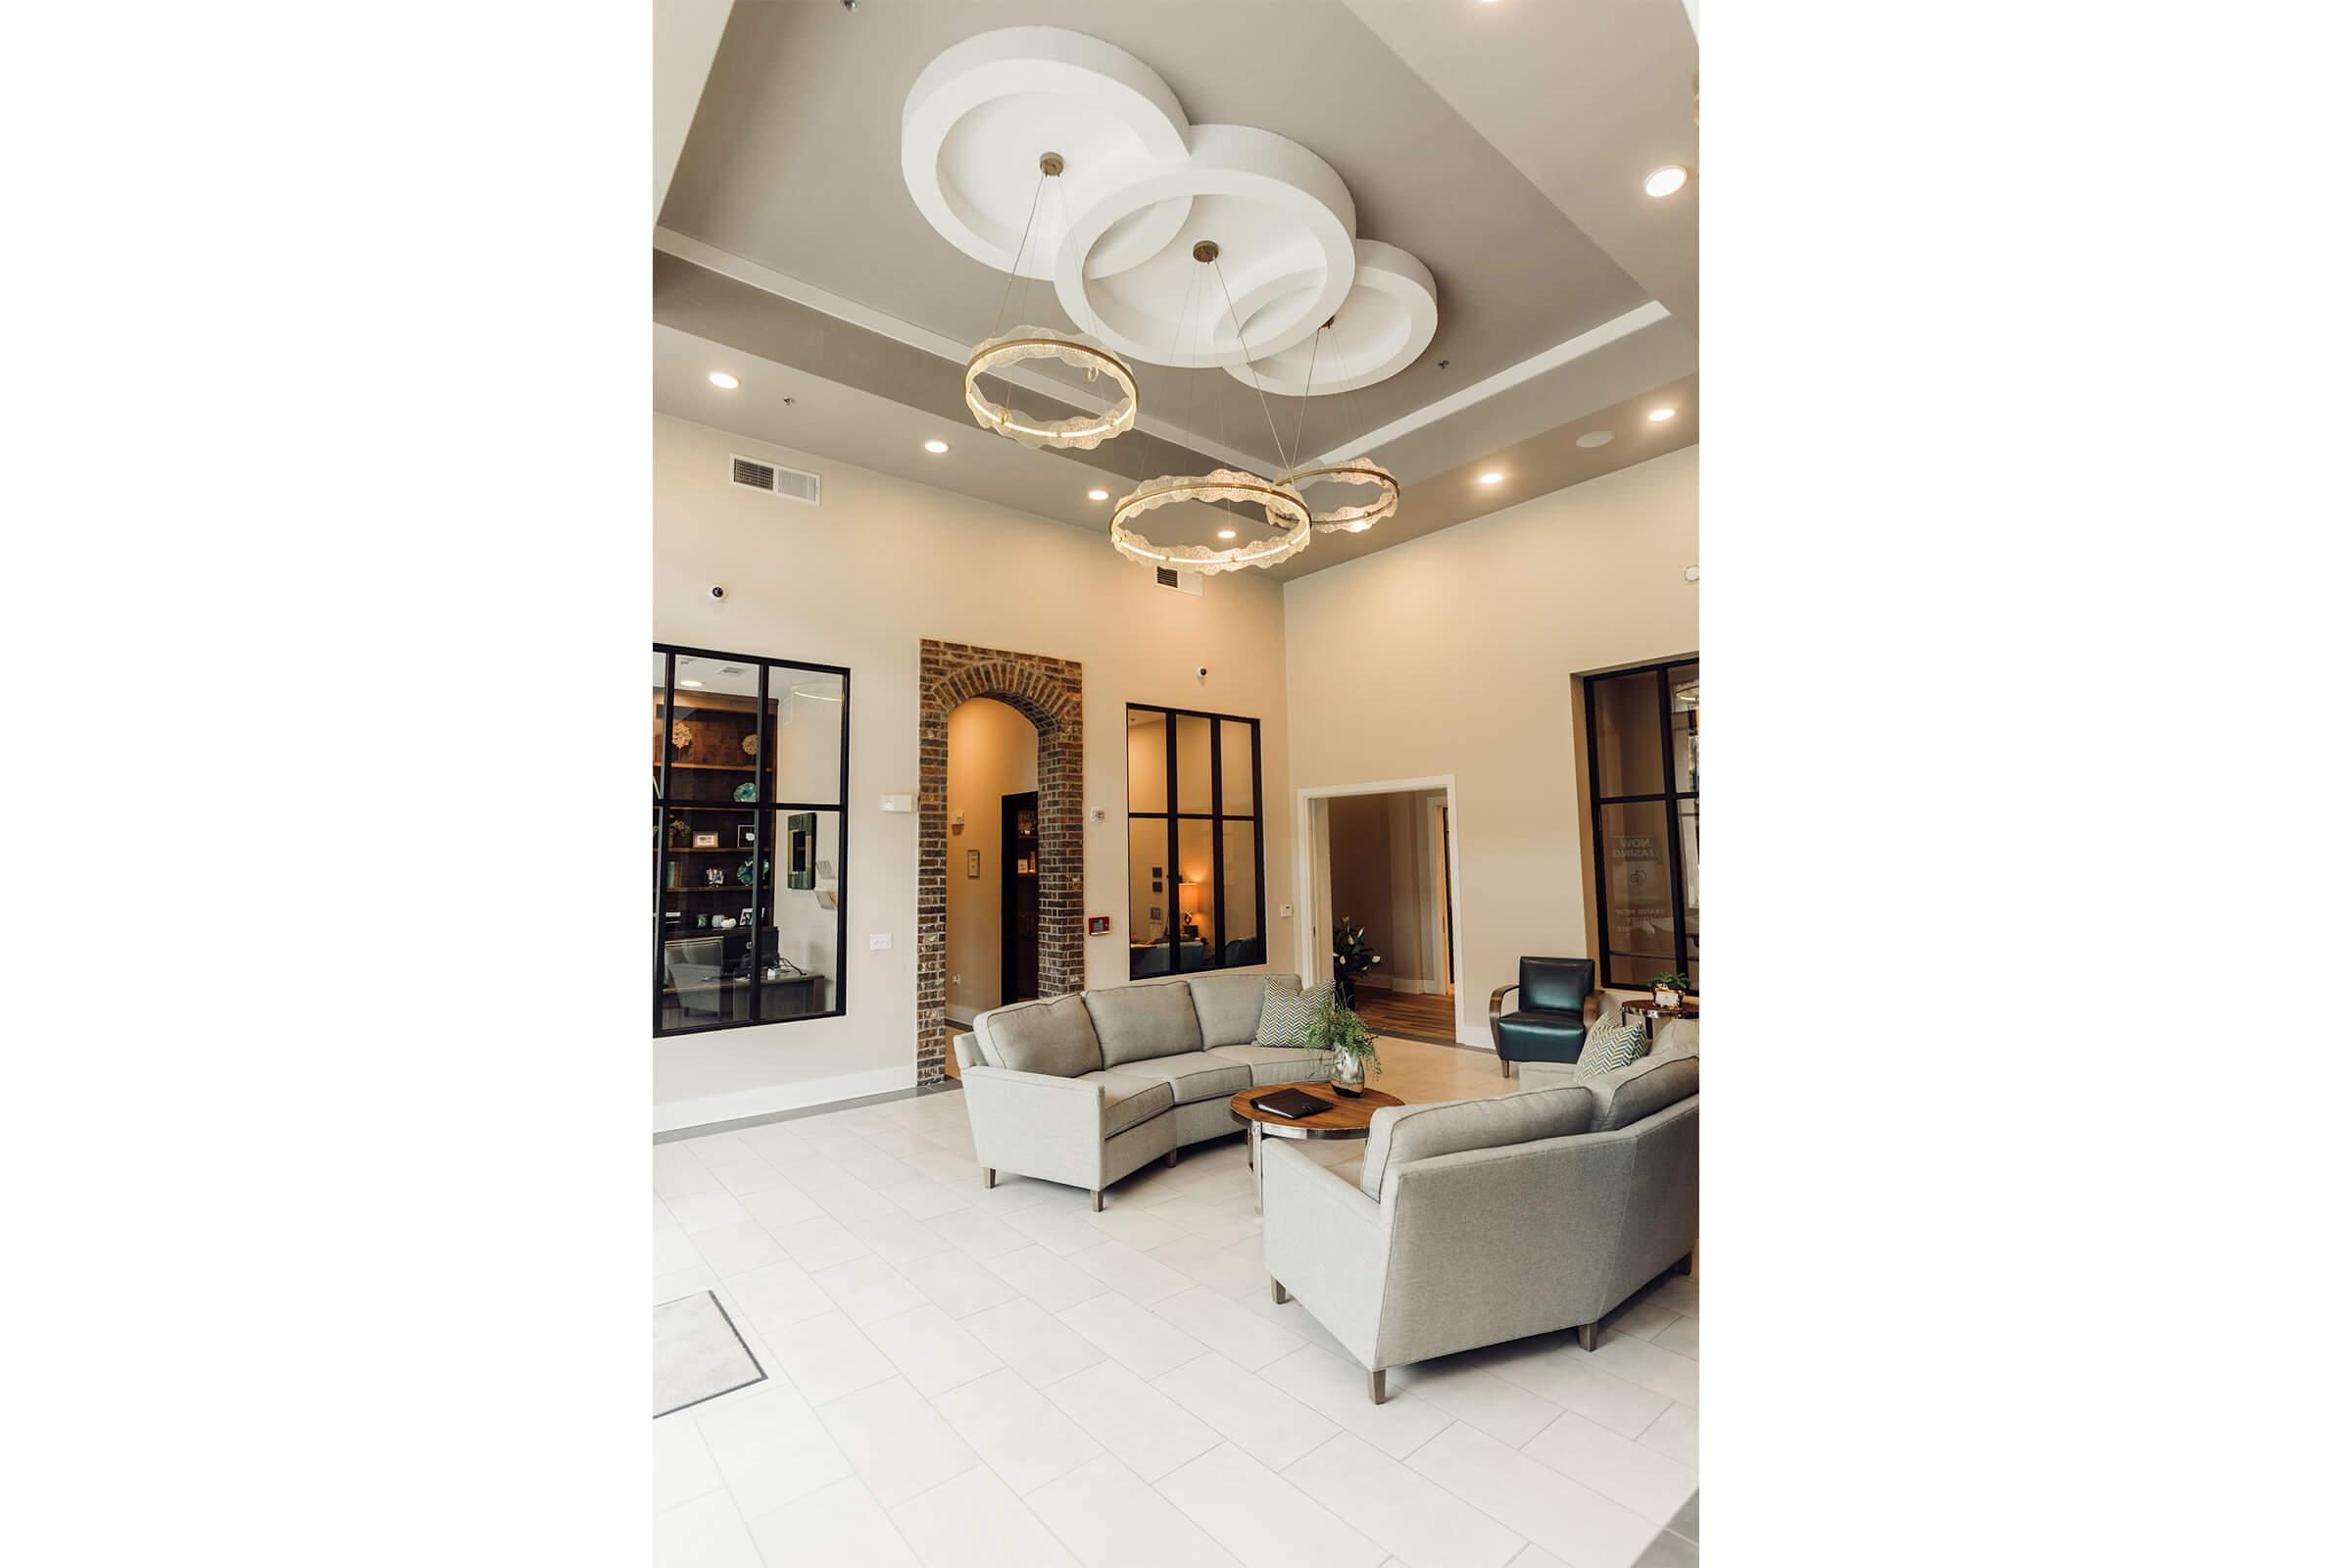 white furniture in a room